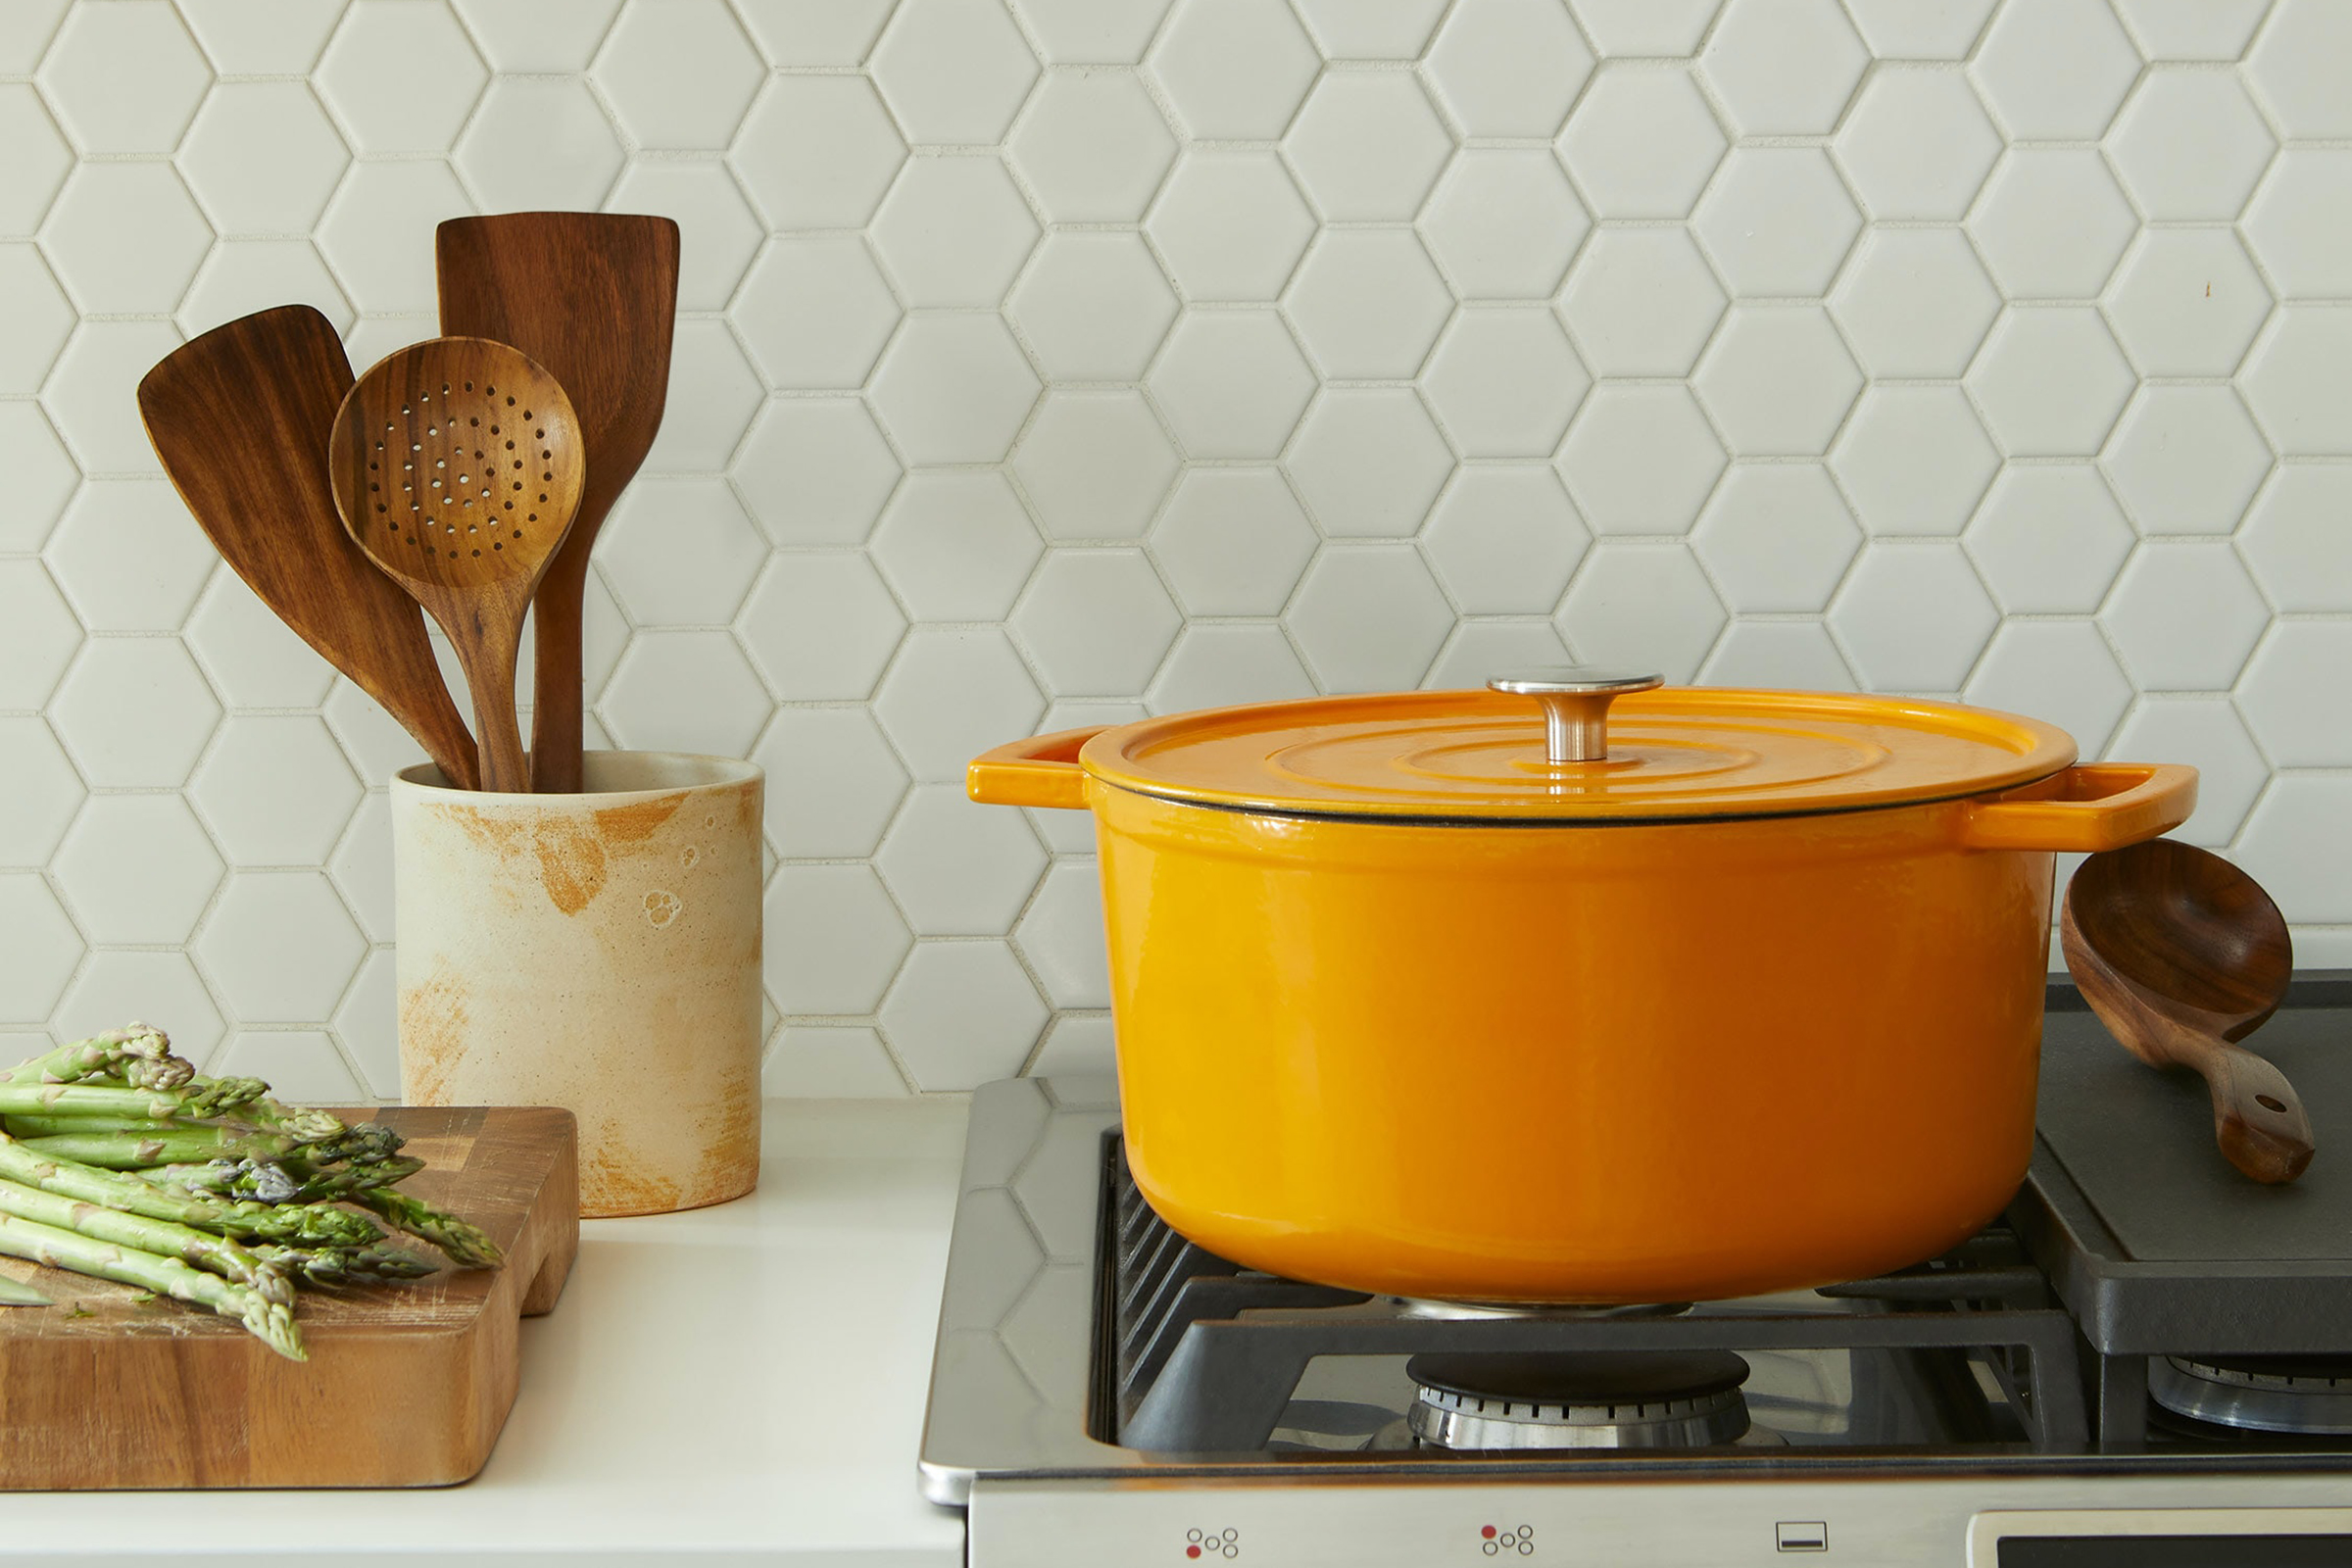 A bright yellow dutch oven resting on top of a stove, on the counter next to it is chopped asparagus on a wood cutting board and a utensil holder